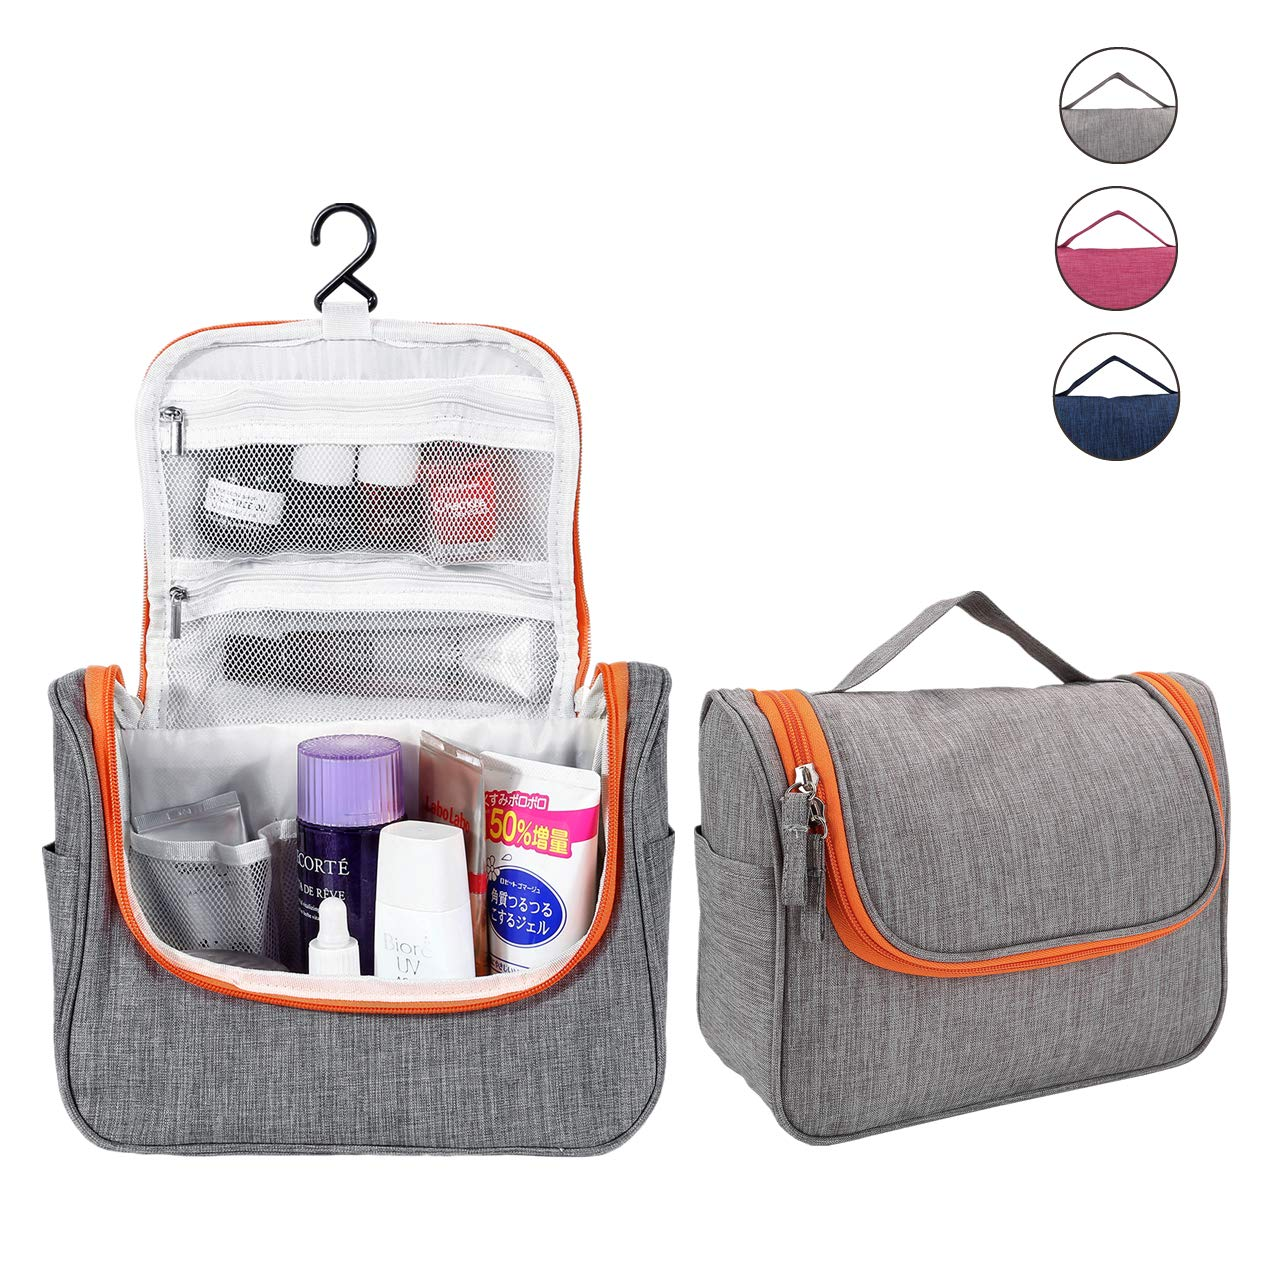 Travel Hanging Toiletry Bag, Mornajina Waterproof Cosmetics Makeup Toiletries Organizer Case for Mens Womens Gray